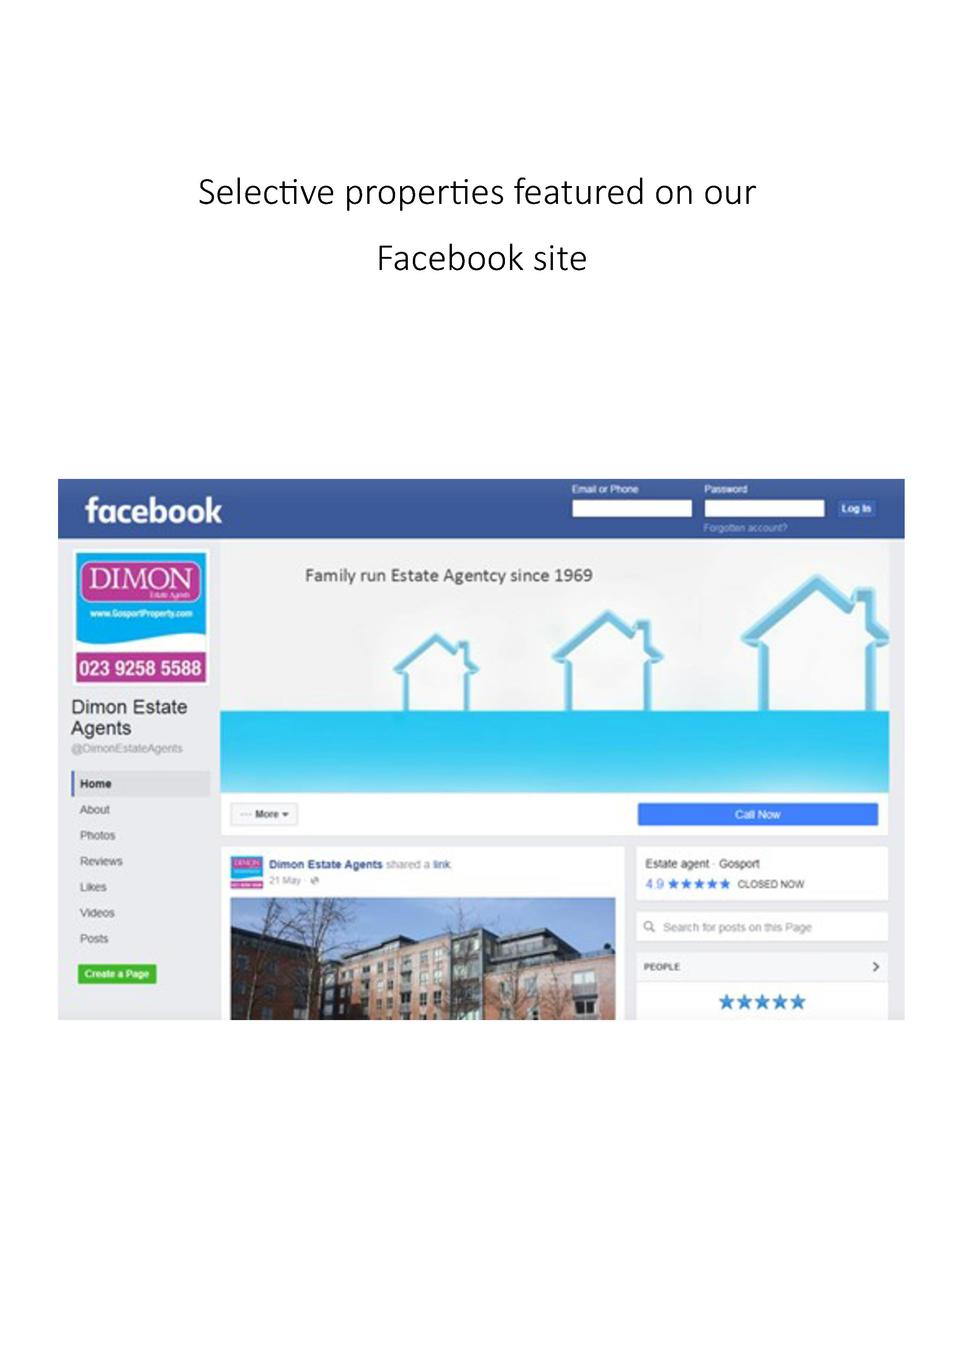 Selective properties featured on our Facebook site